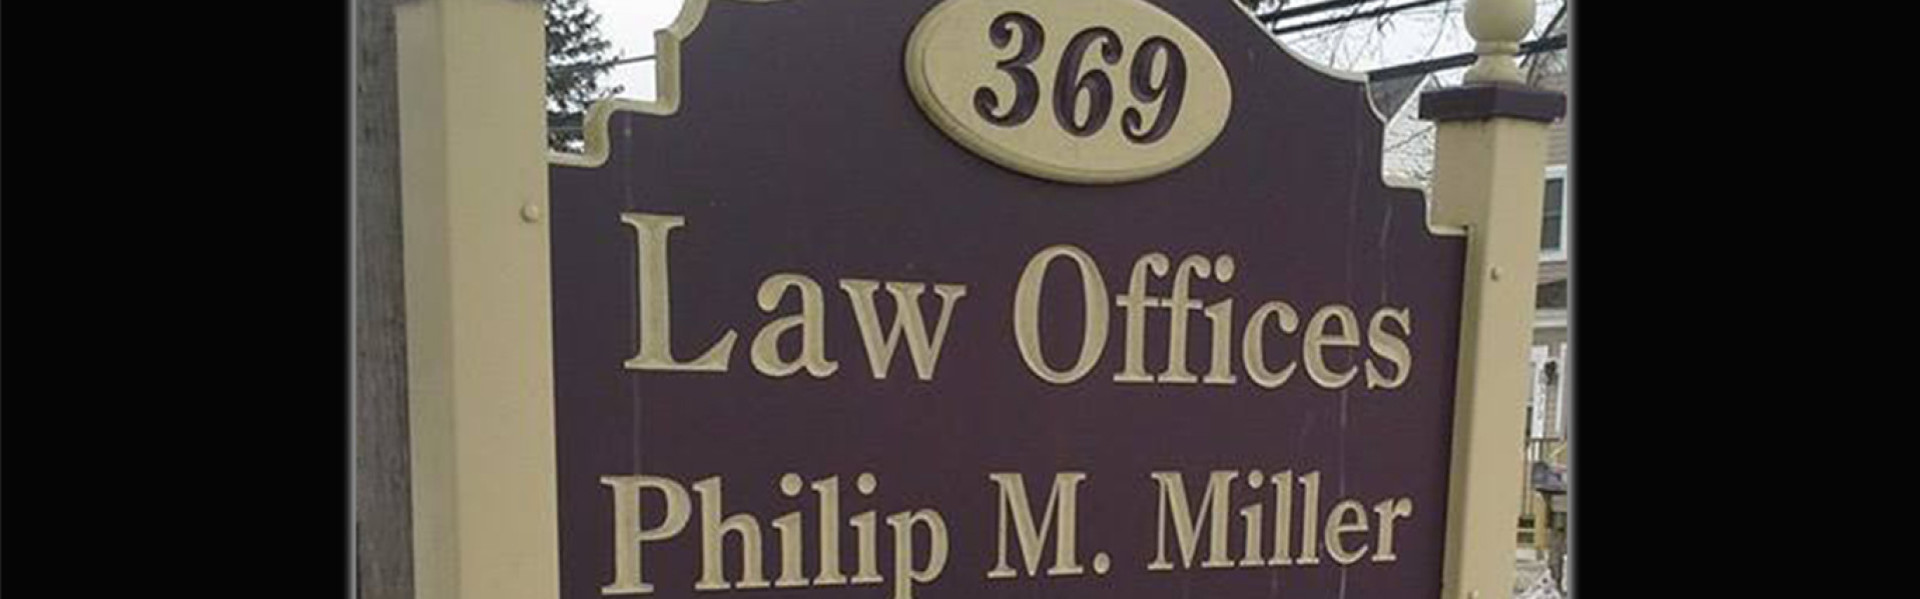 Law Offices of Philip M Miller